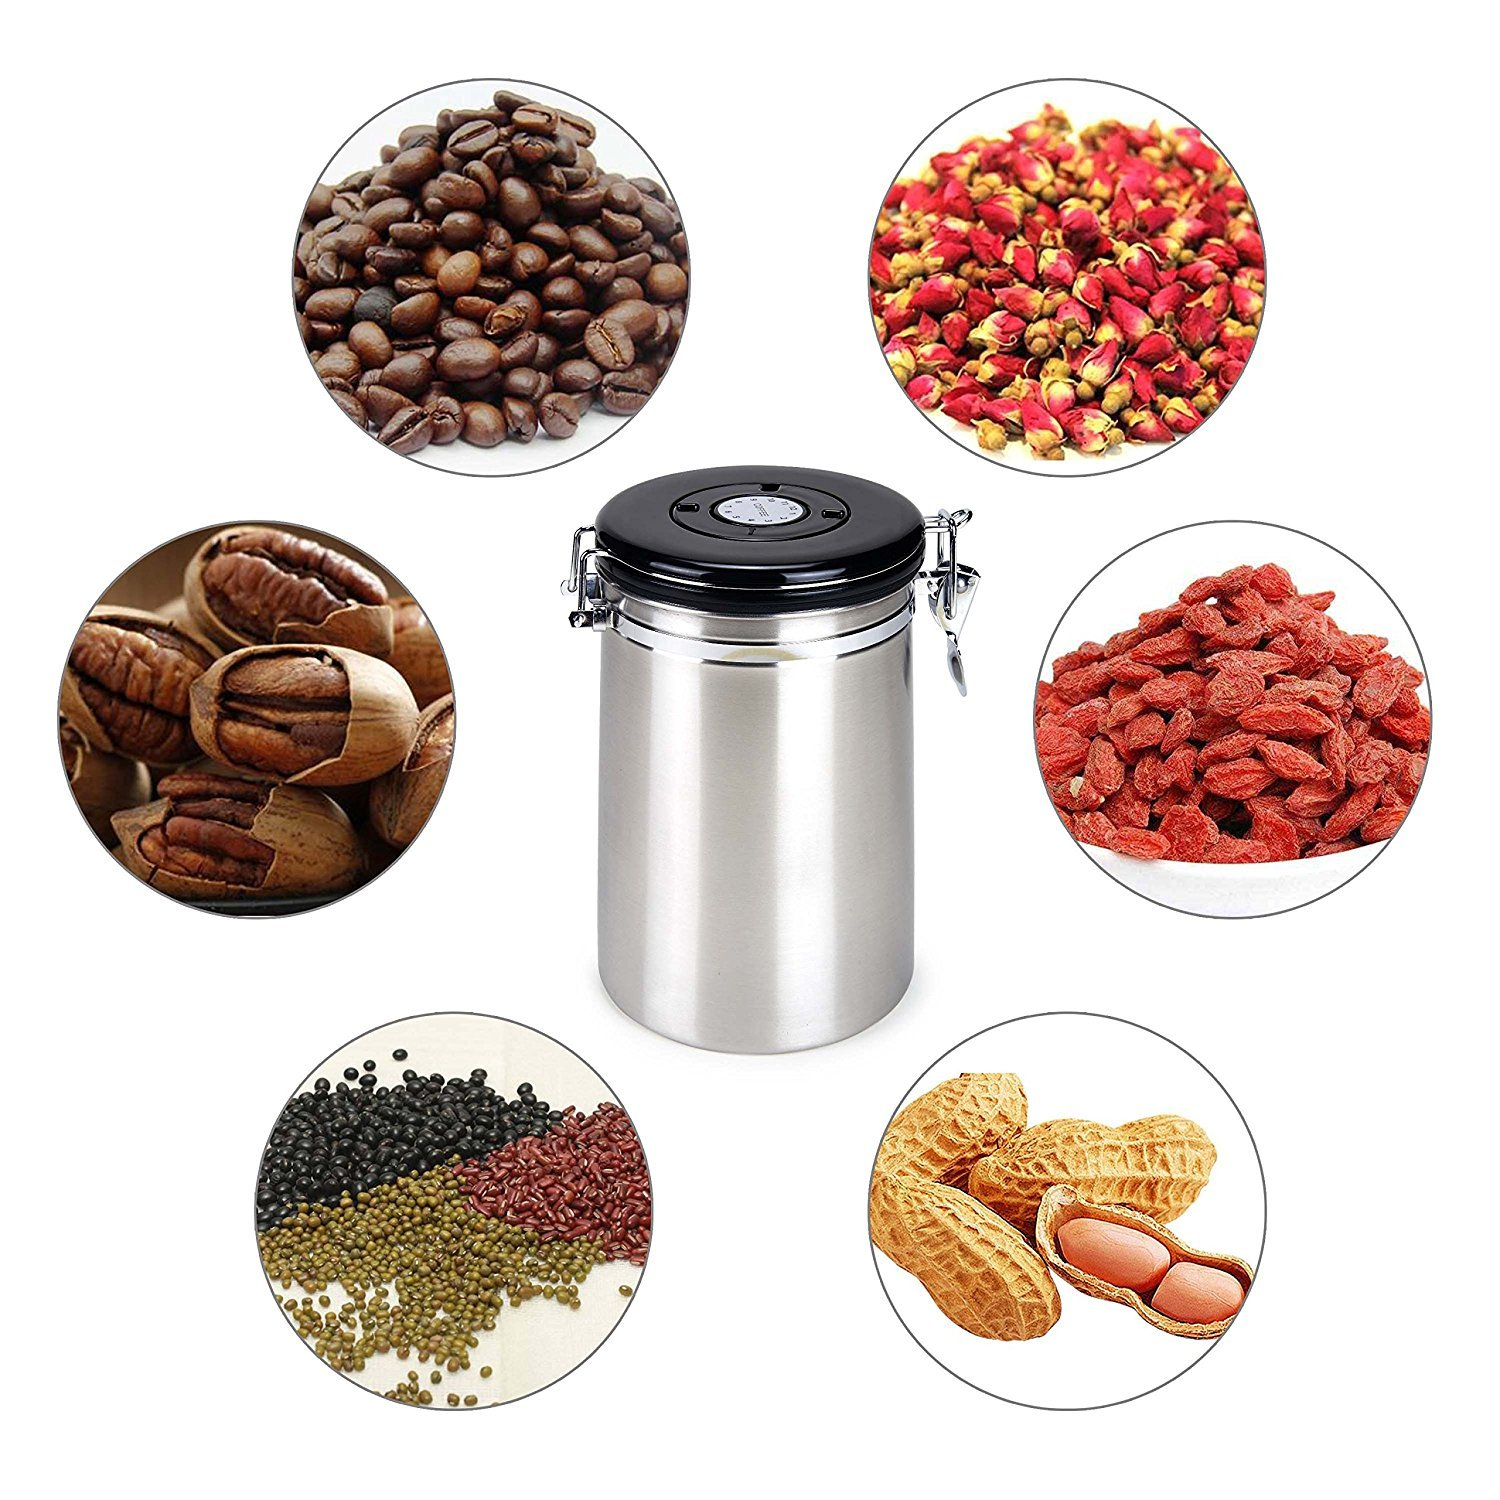 Airtight Coffee Canister,Movaty Stainless Steel Coffee Container CO2 Valve Vacuum Storage, 600g/21oz with 1 Measure Spoon,for Coffee, Tea, Nuts and Powders,Color Silver